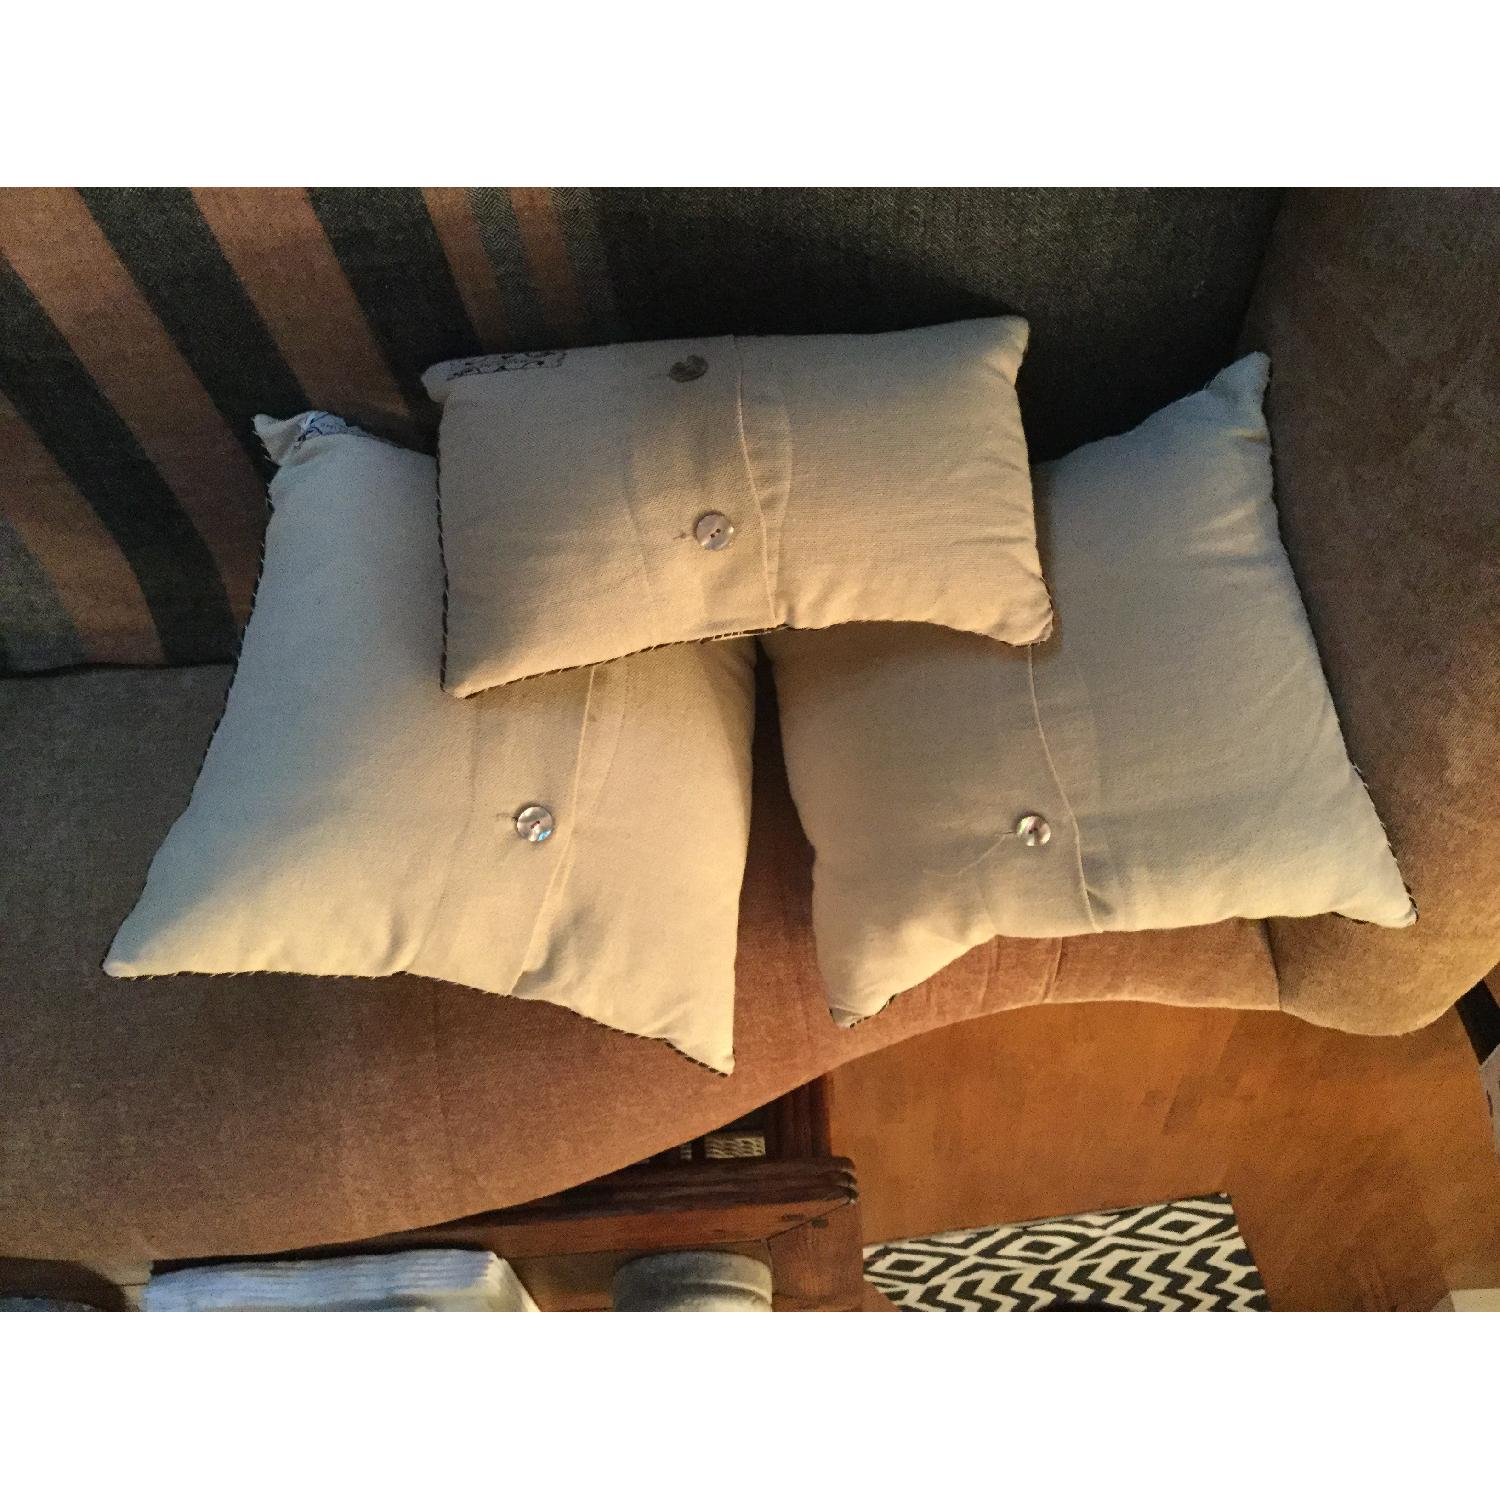 ABC Carpet and Home Madeline Weinrib Throw Pillows-2